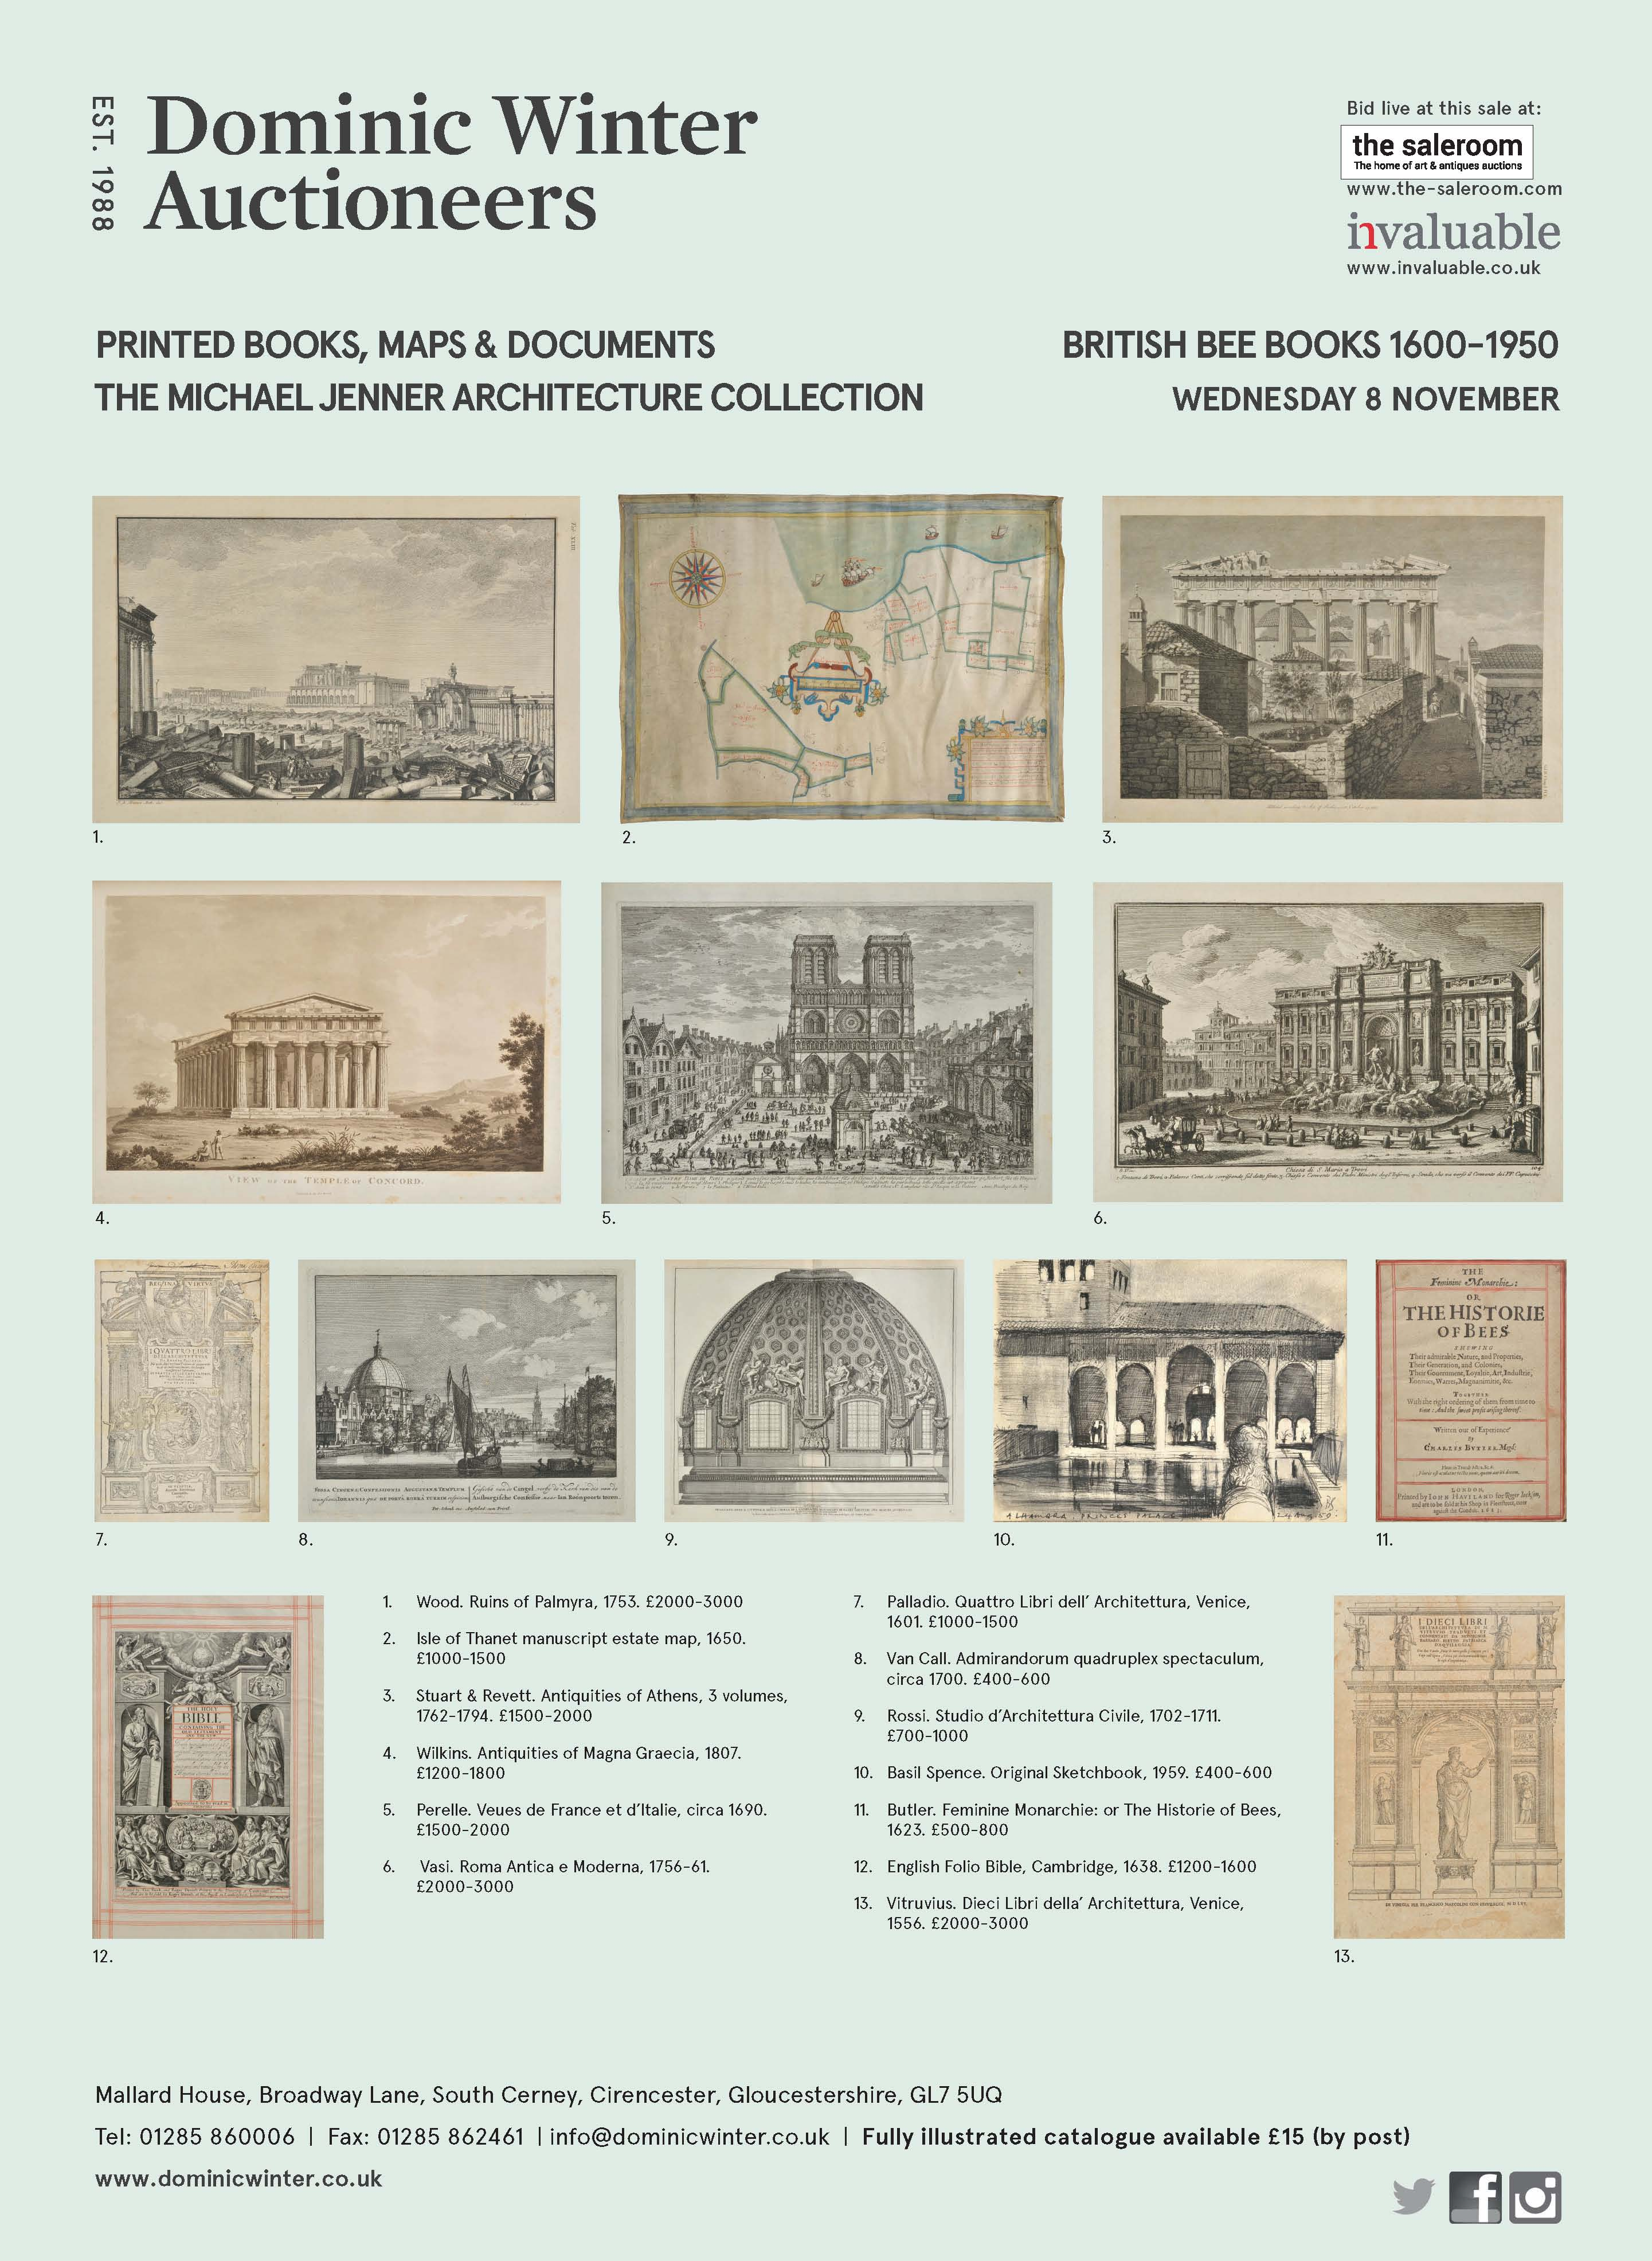 Dominic Winter - Printed Books, Maps & Documents The Michael Jenner Architecture Collection.jpg